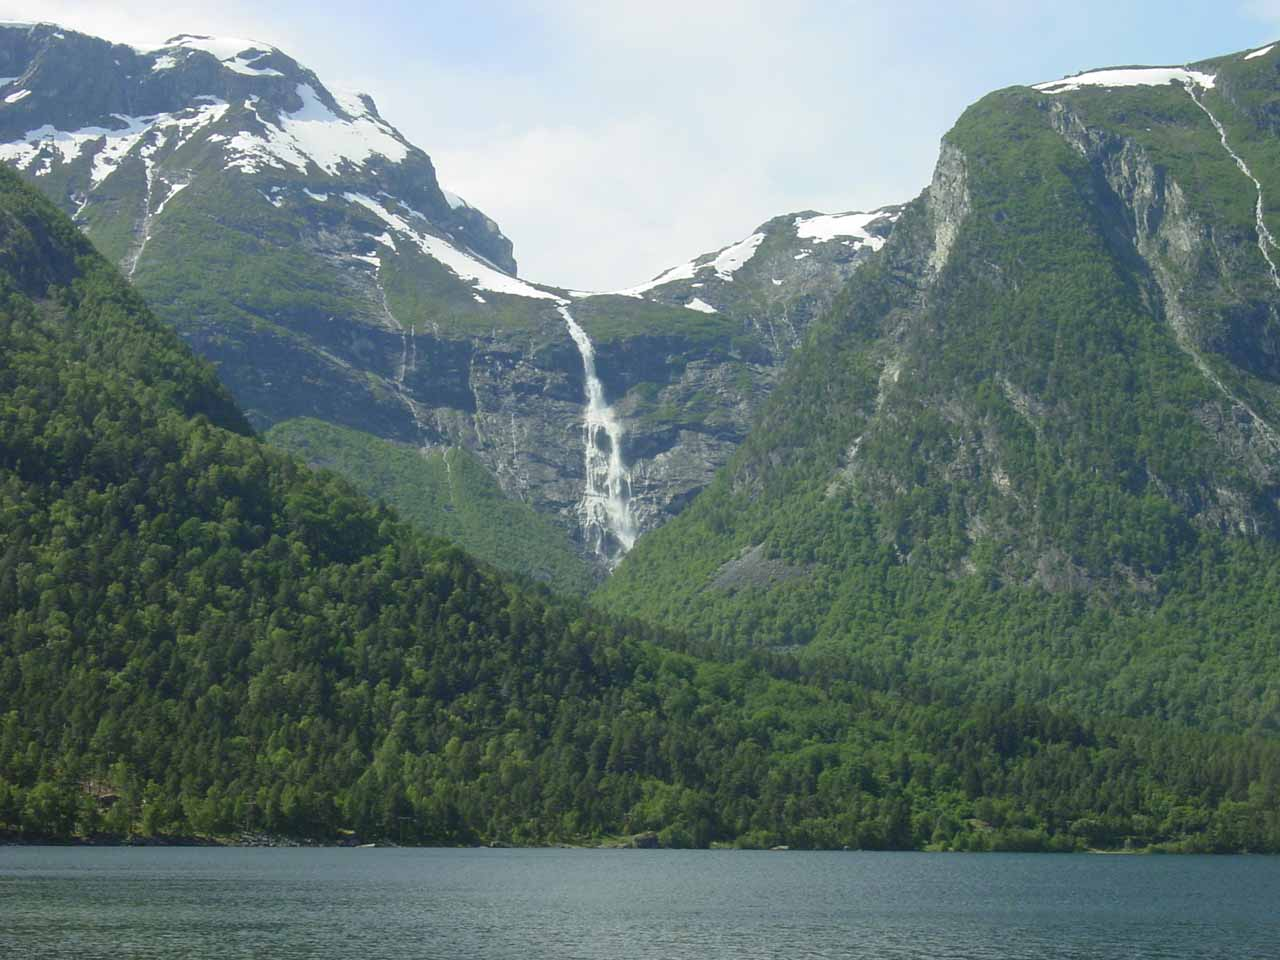 Looking across Eikesdalsvatnet towards some other impressive waterfall in the vicinity of Mardalsfossen as we were about to head north out of Eikesdalen Valley